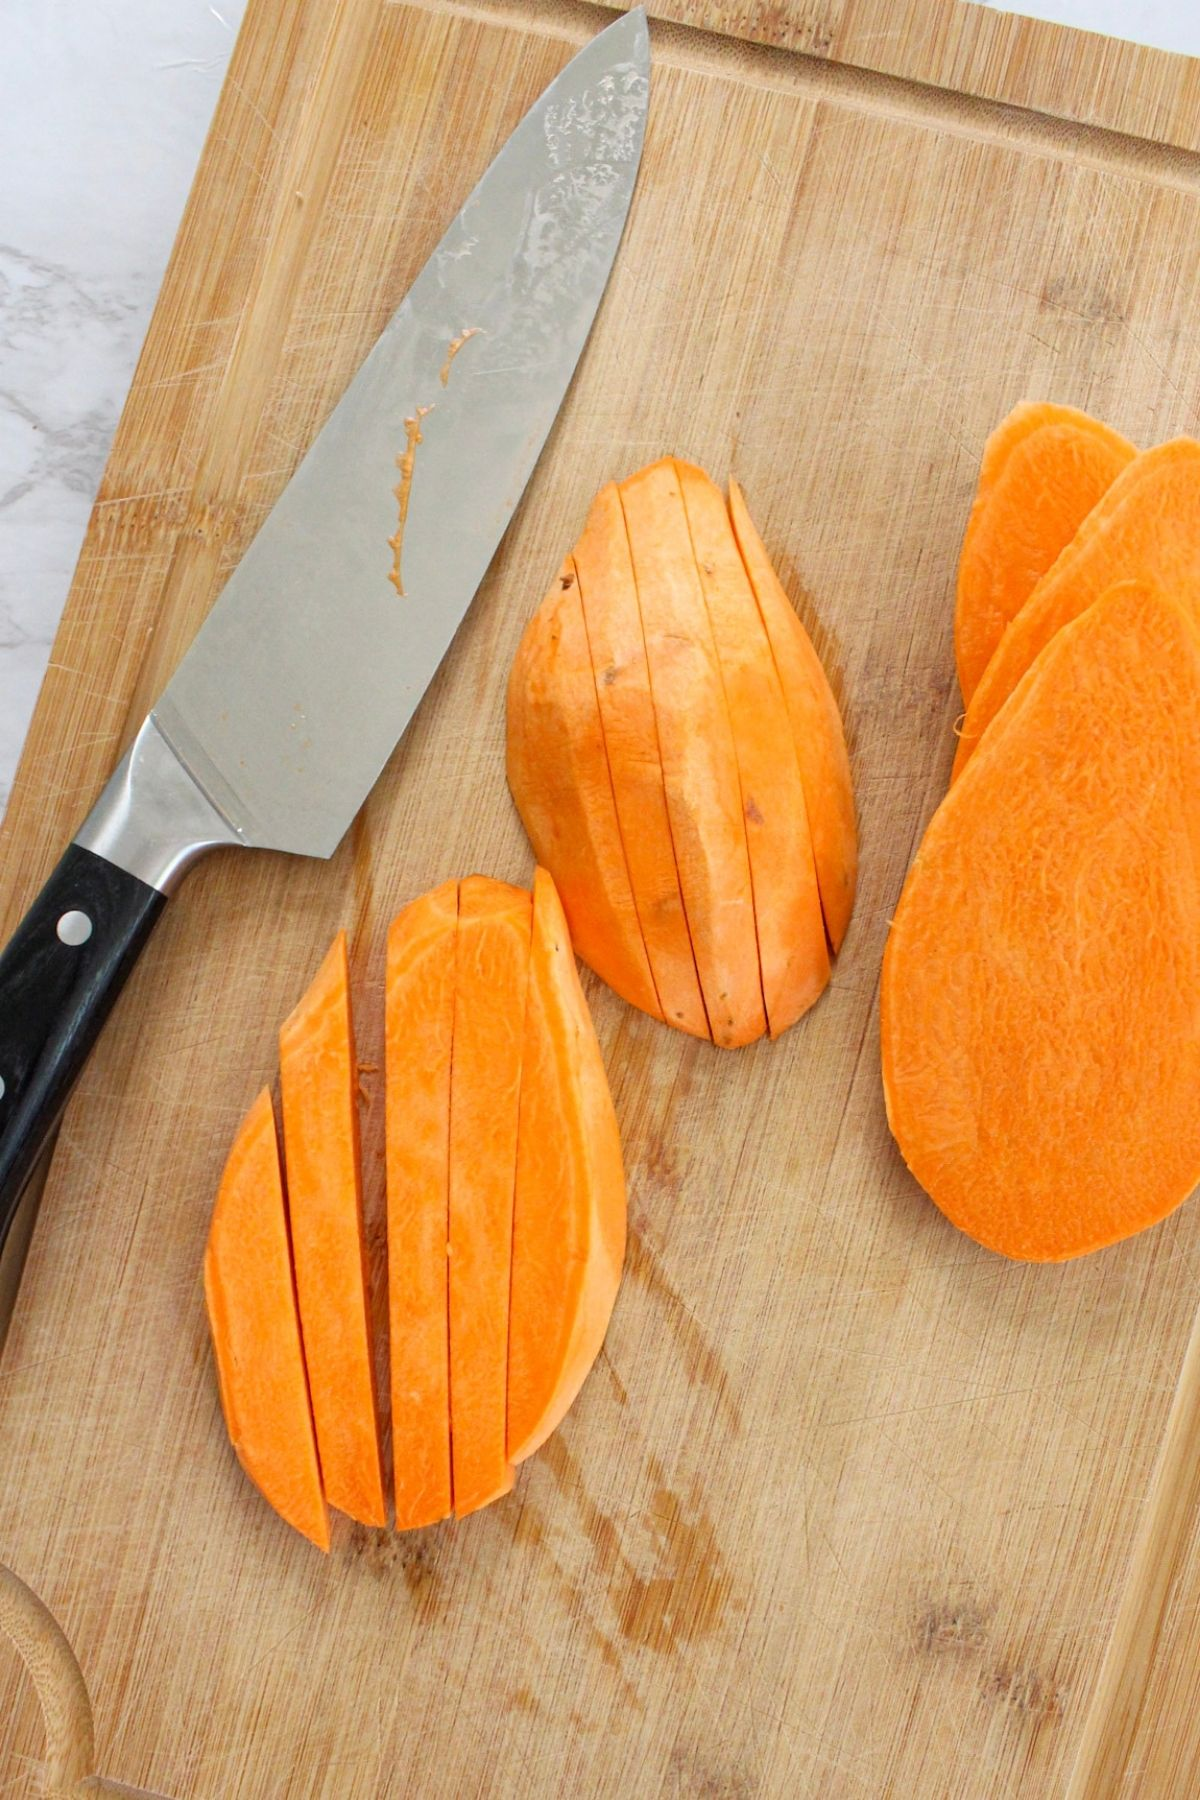 Sweet potatoes peeled and on a cutting board.